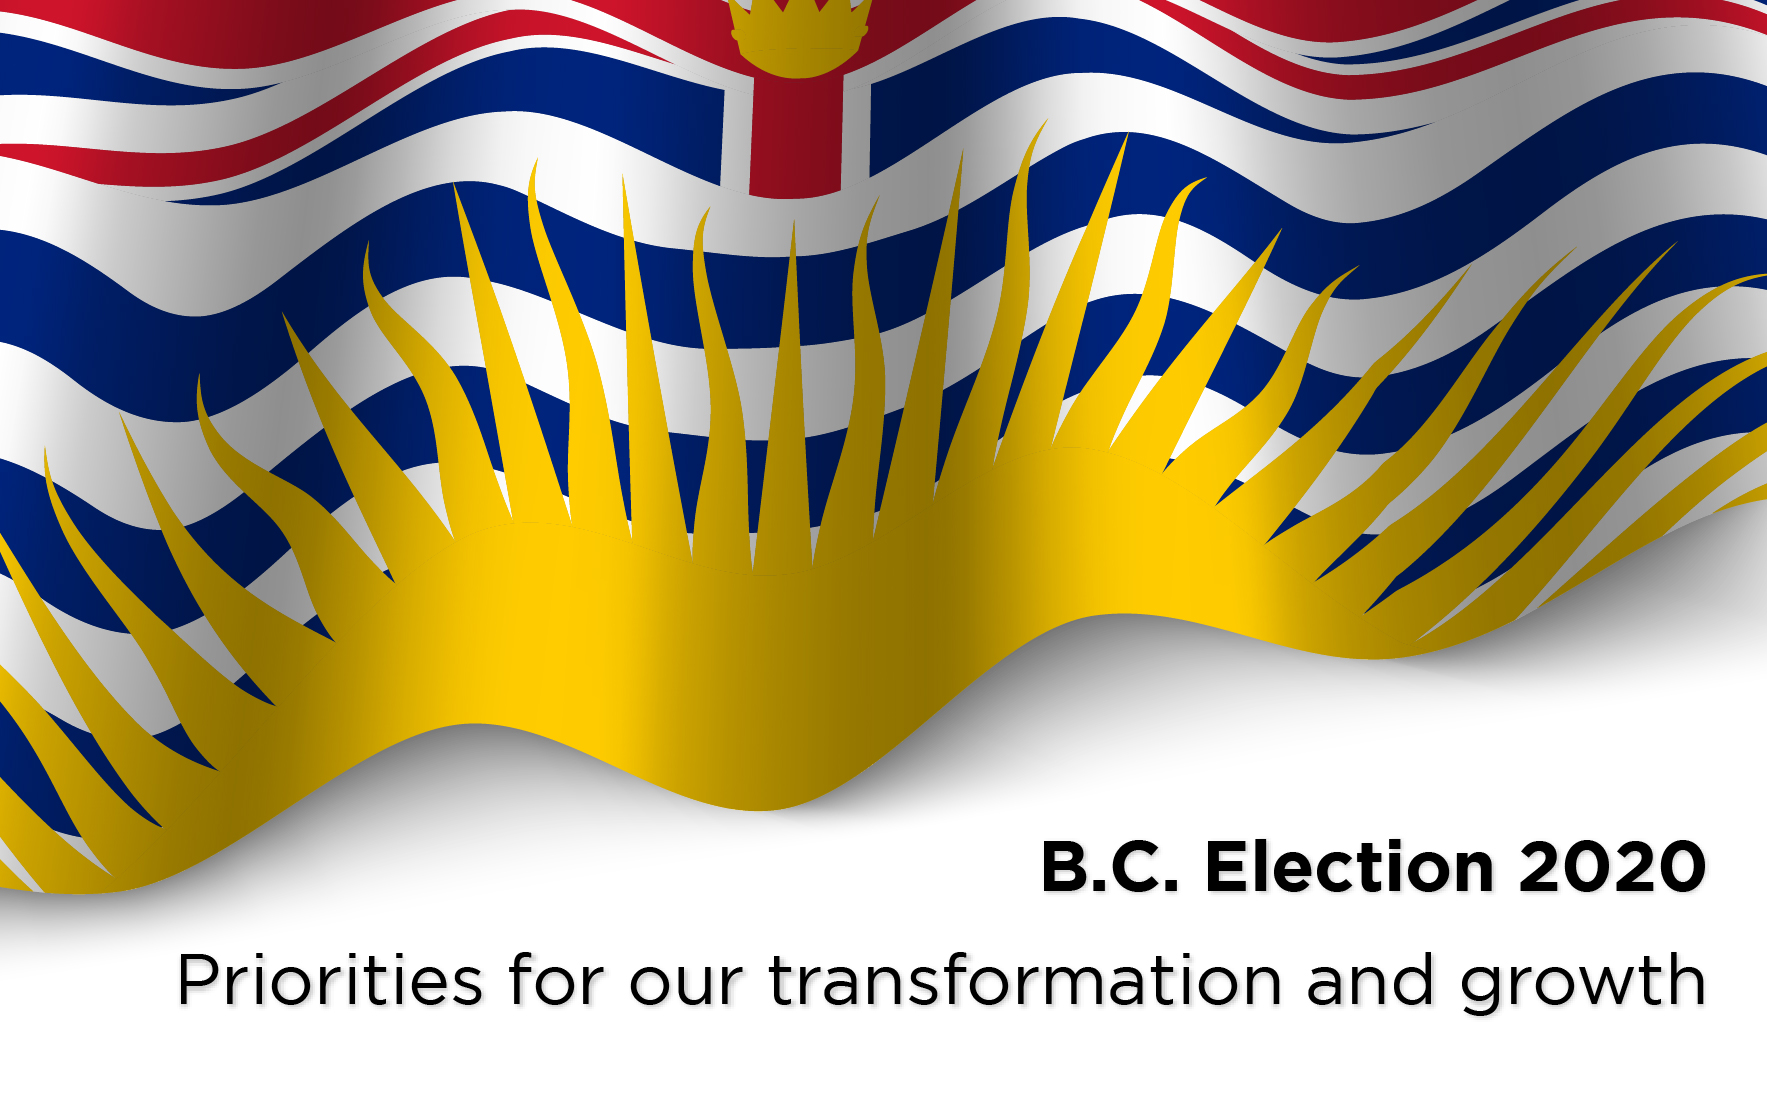 : BC Election 2020: Priorities for B.C.'s Transformation and Growth